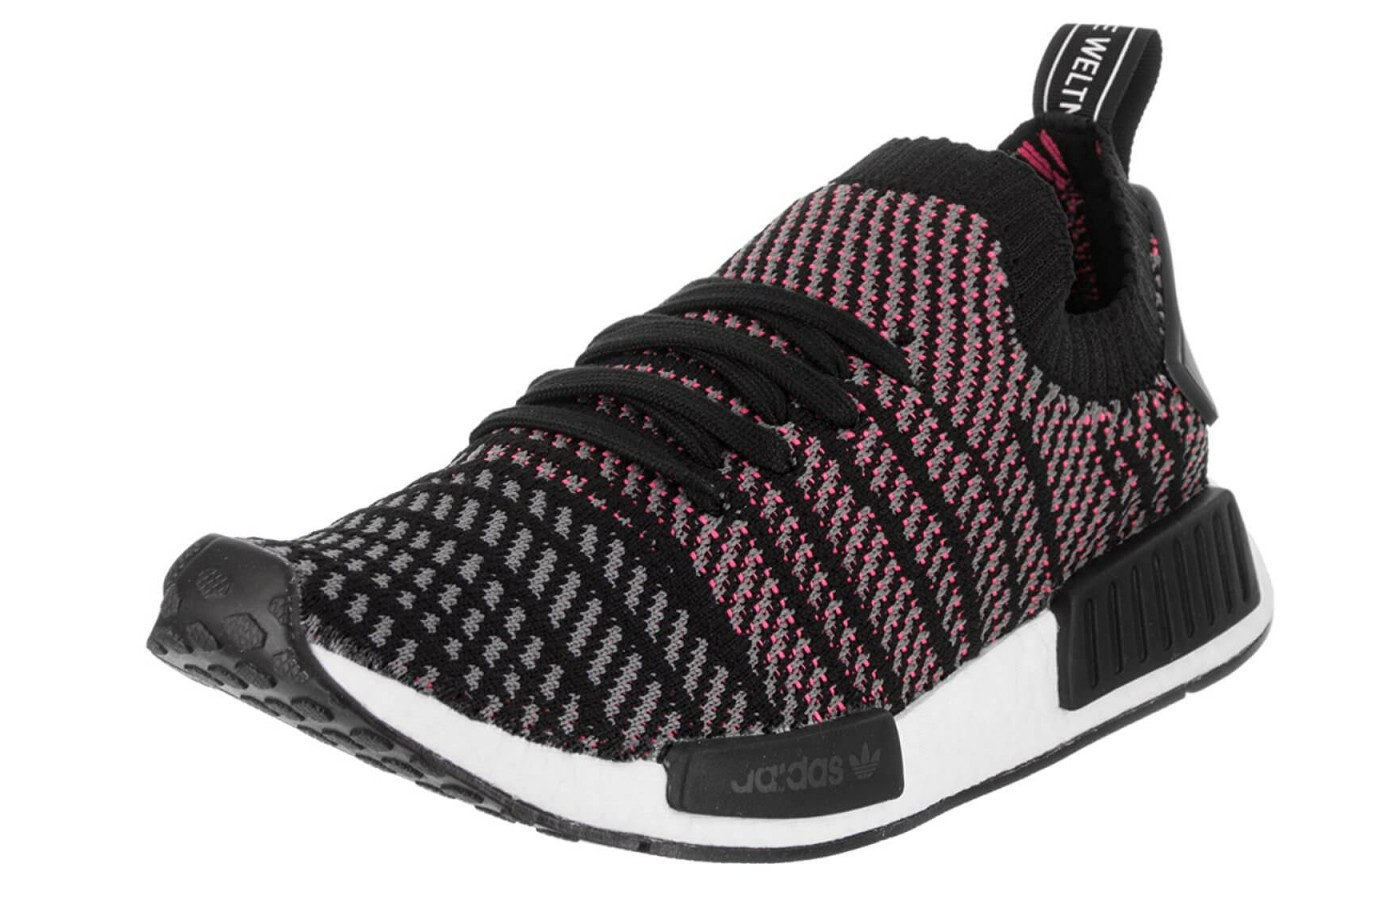 7c871dac1 The Adidas NMD R1 Stlt Primeknit features a Primeknit upper ...